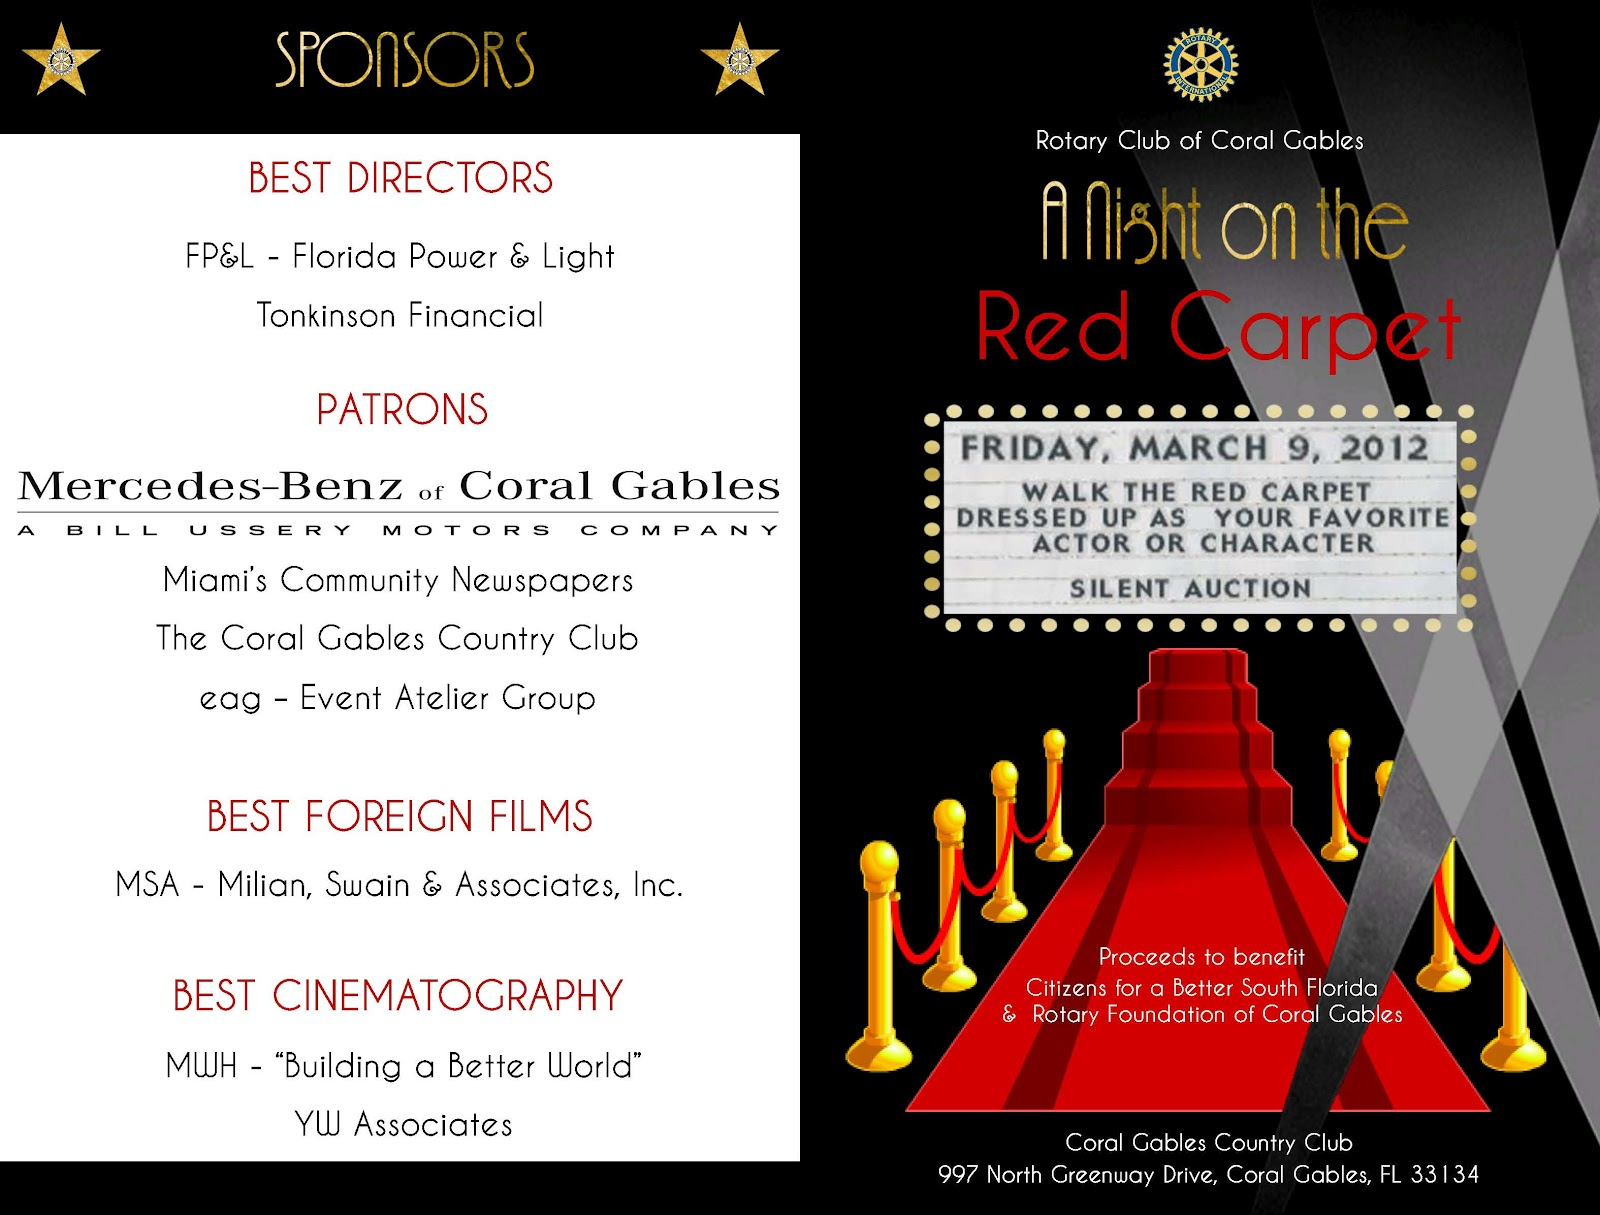 Red carpet party invitations free template - akross.info